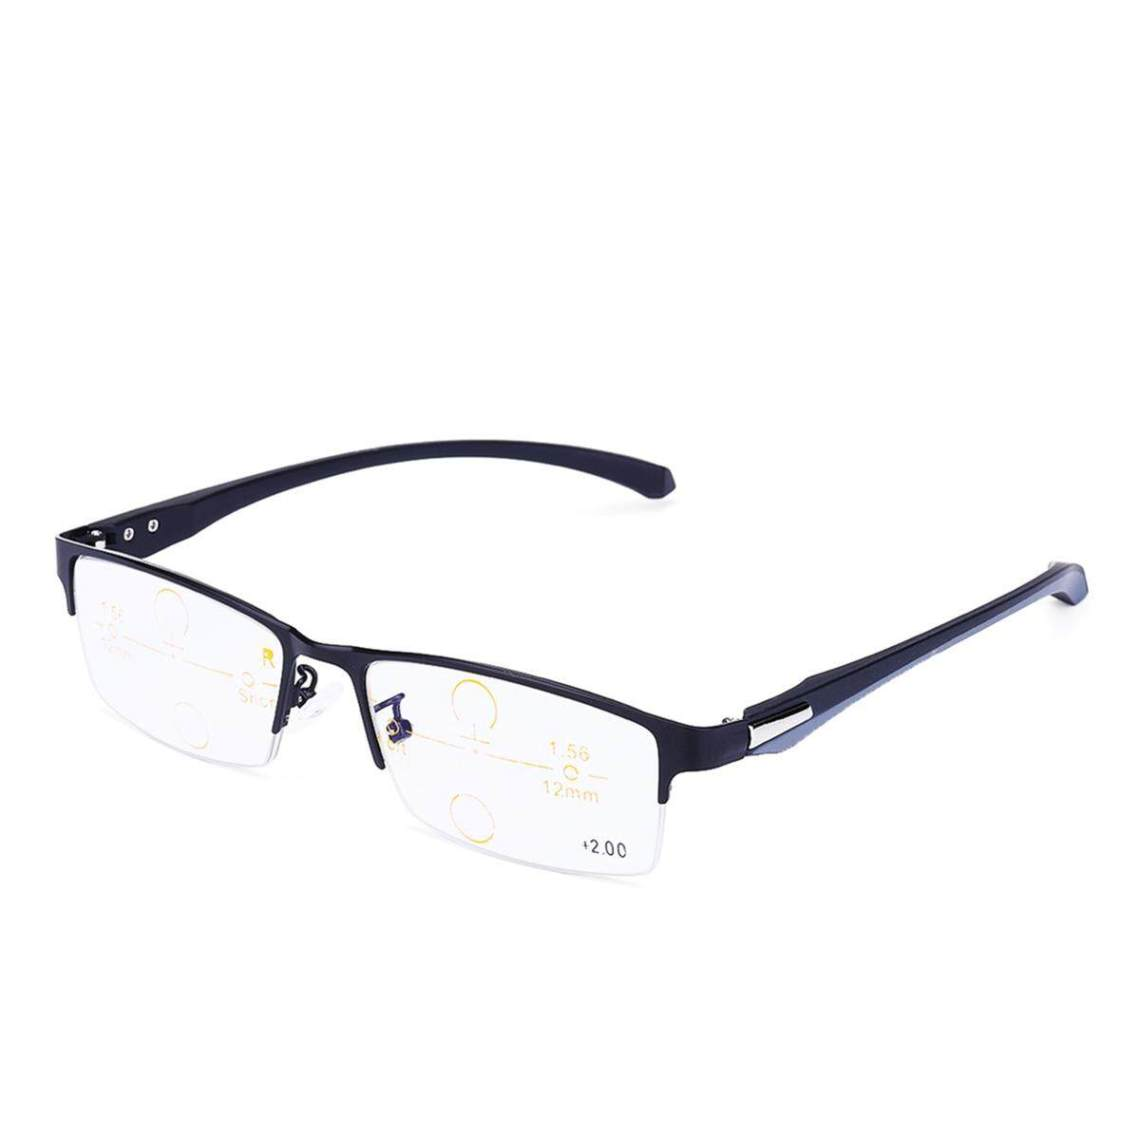 125 Degree Transition Photochromic Multi Focus Sun Presbyopic Progressive Reading Glasses